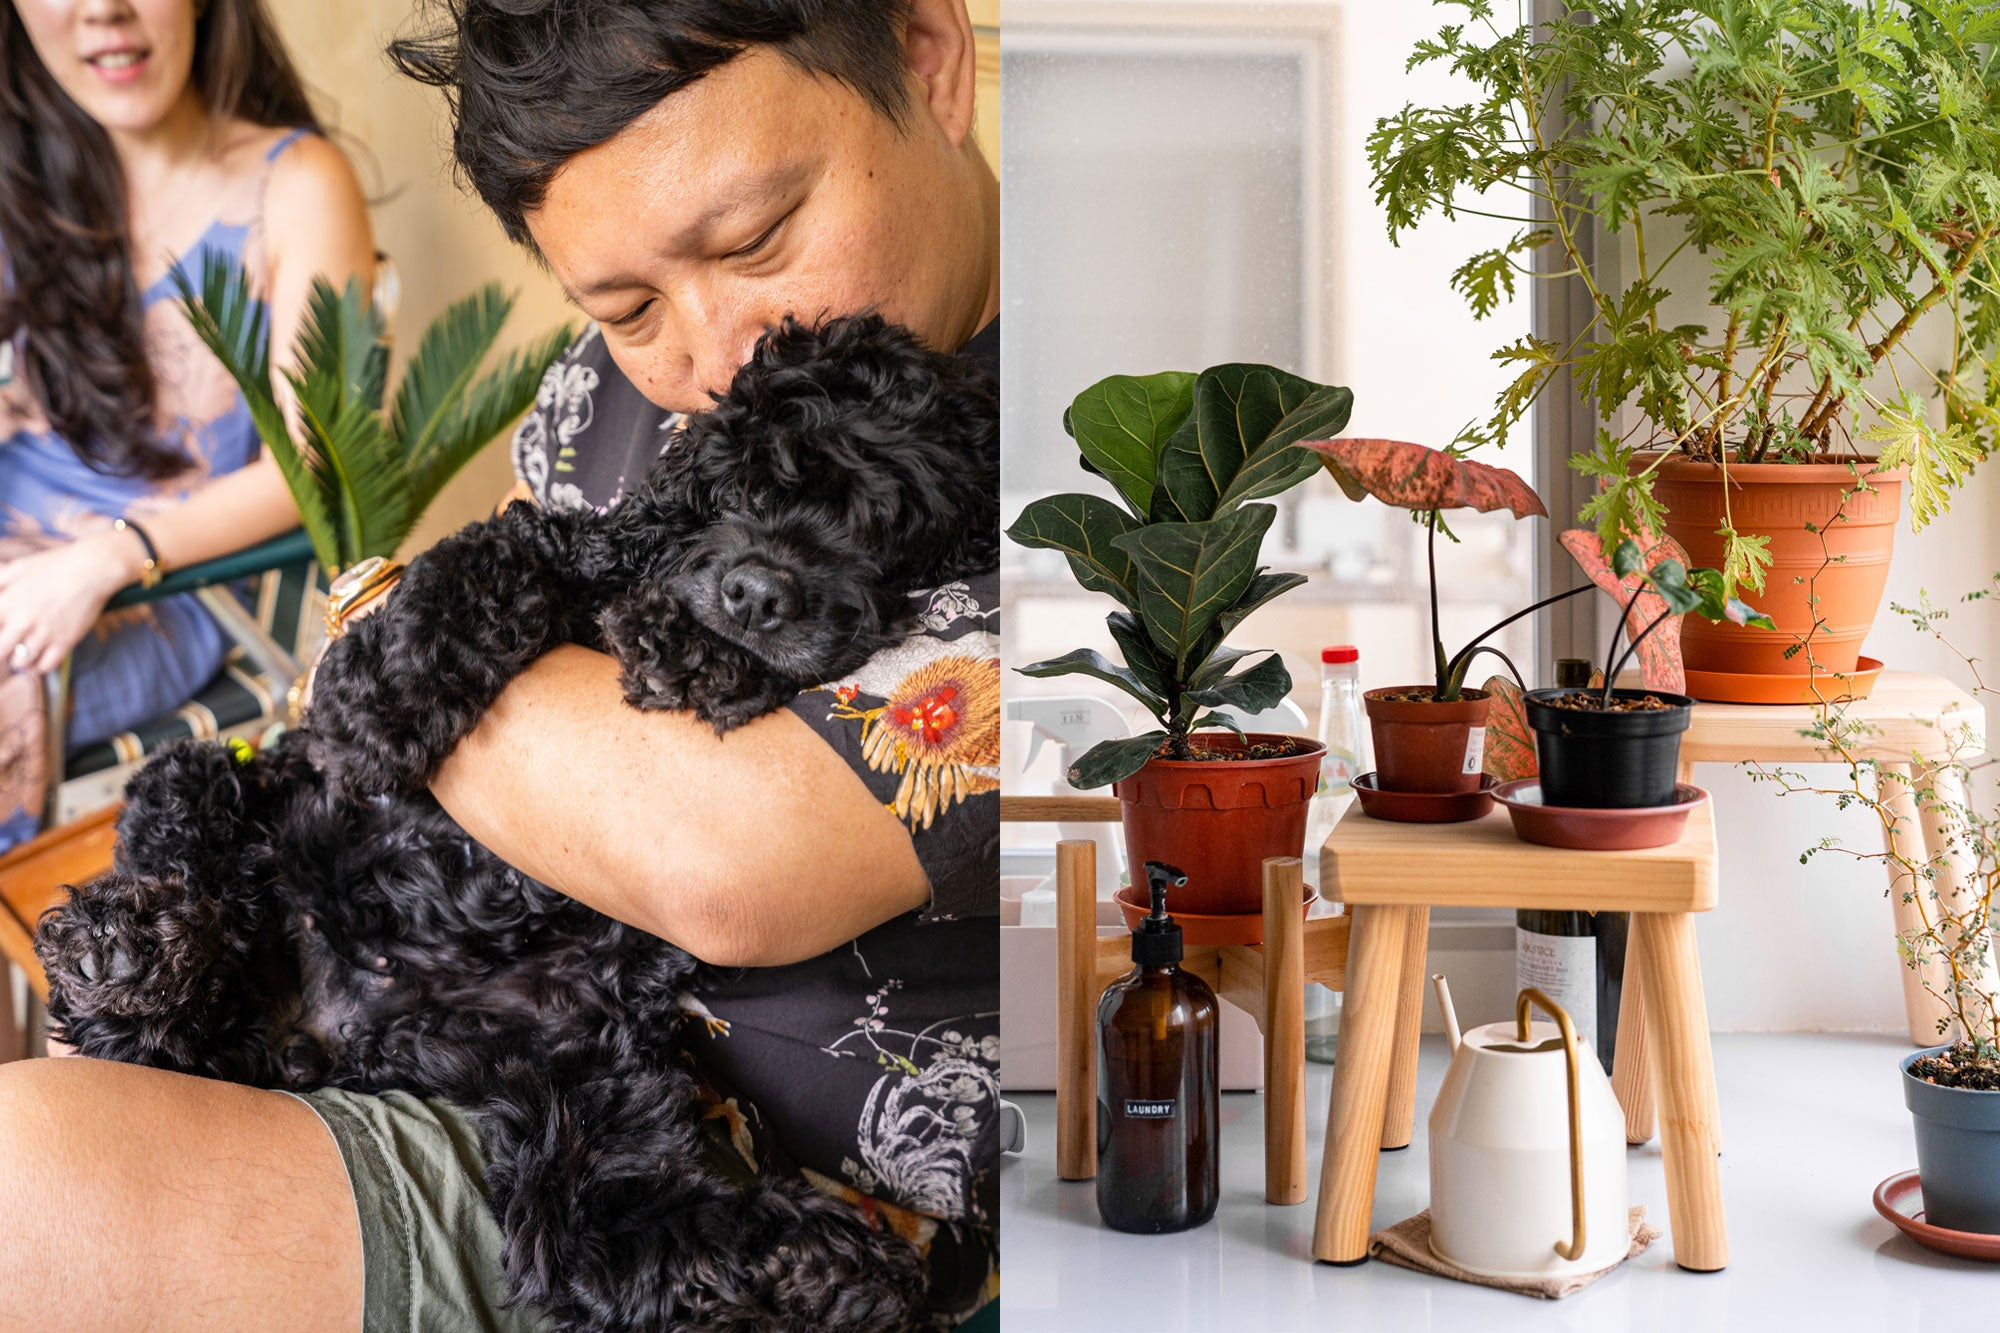 house plants in modern home with black cockel spaniel